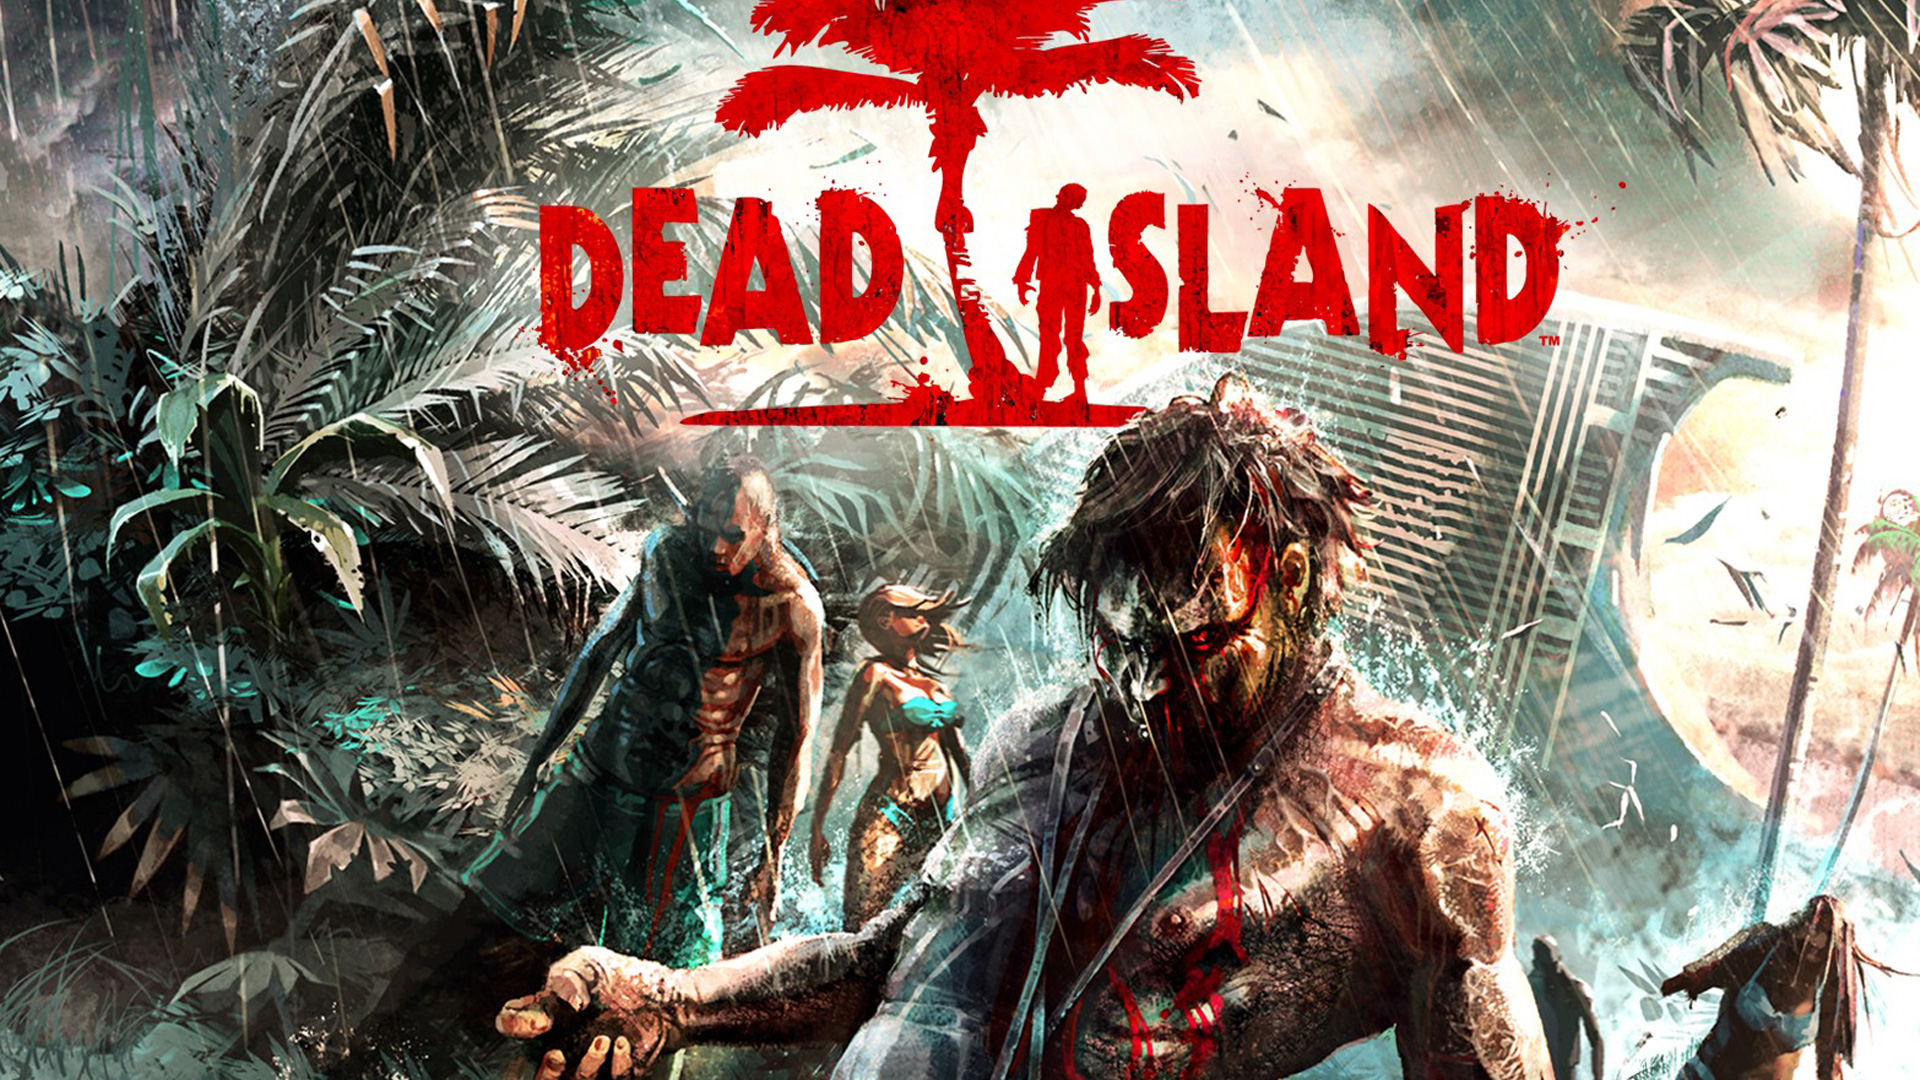 Dead Island telecharger gratuit de PC et Torrent